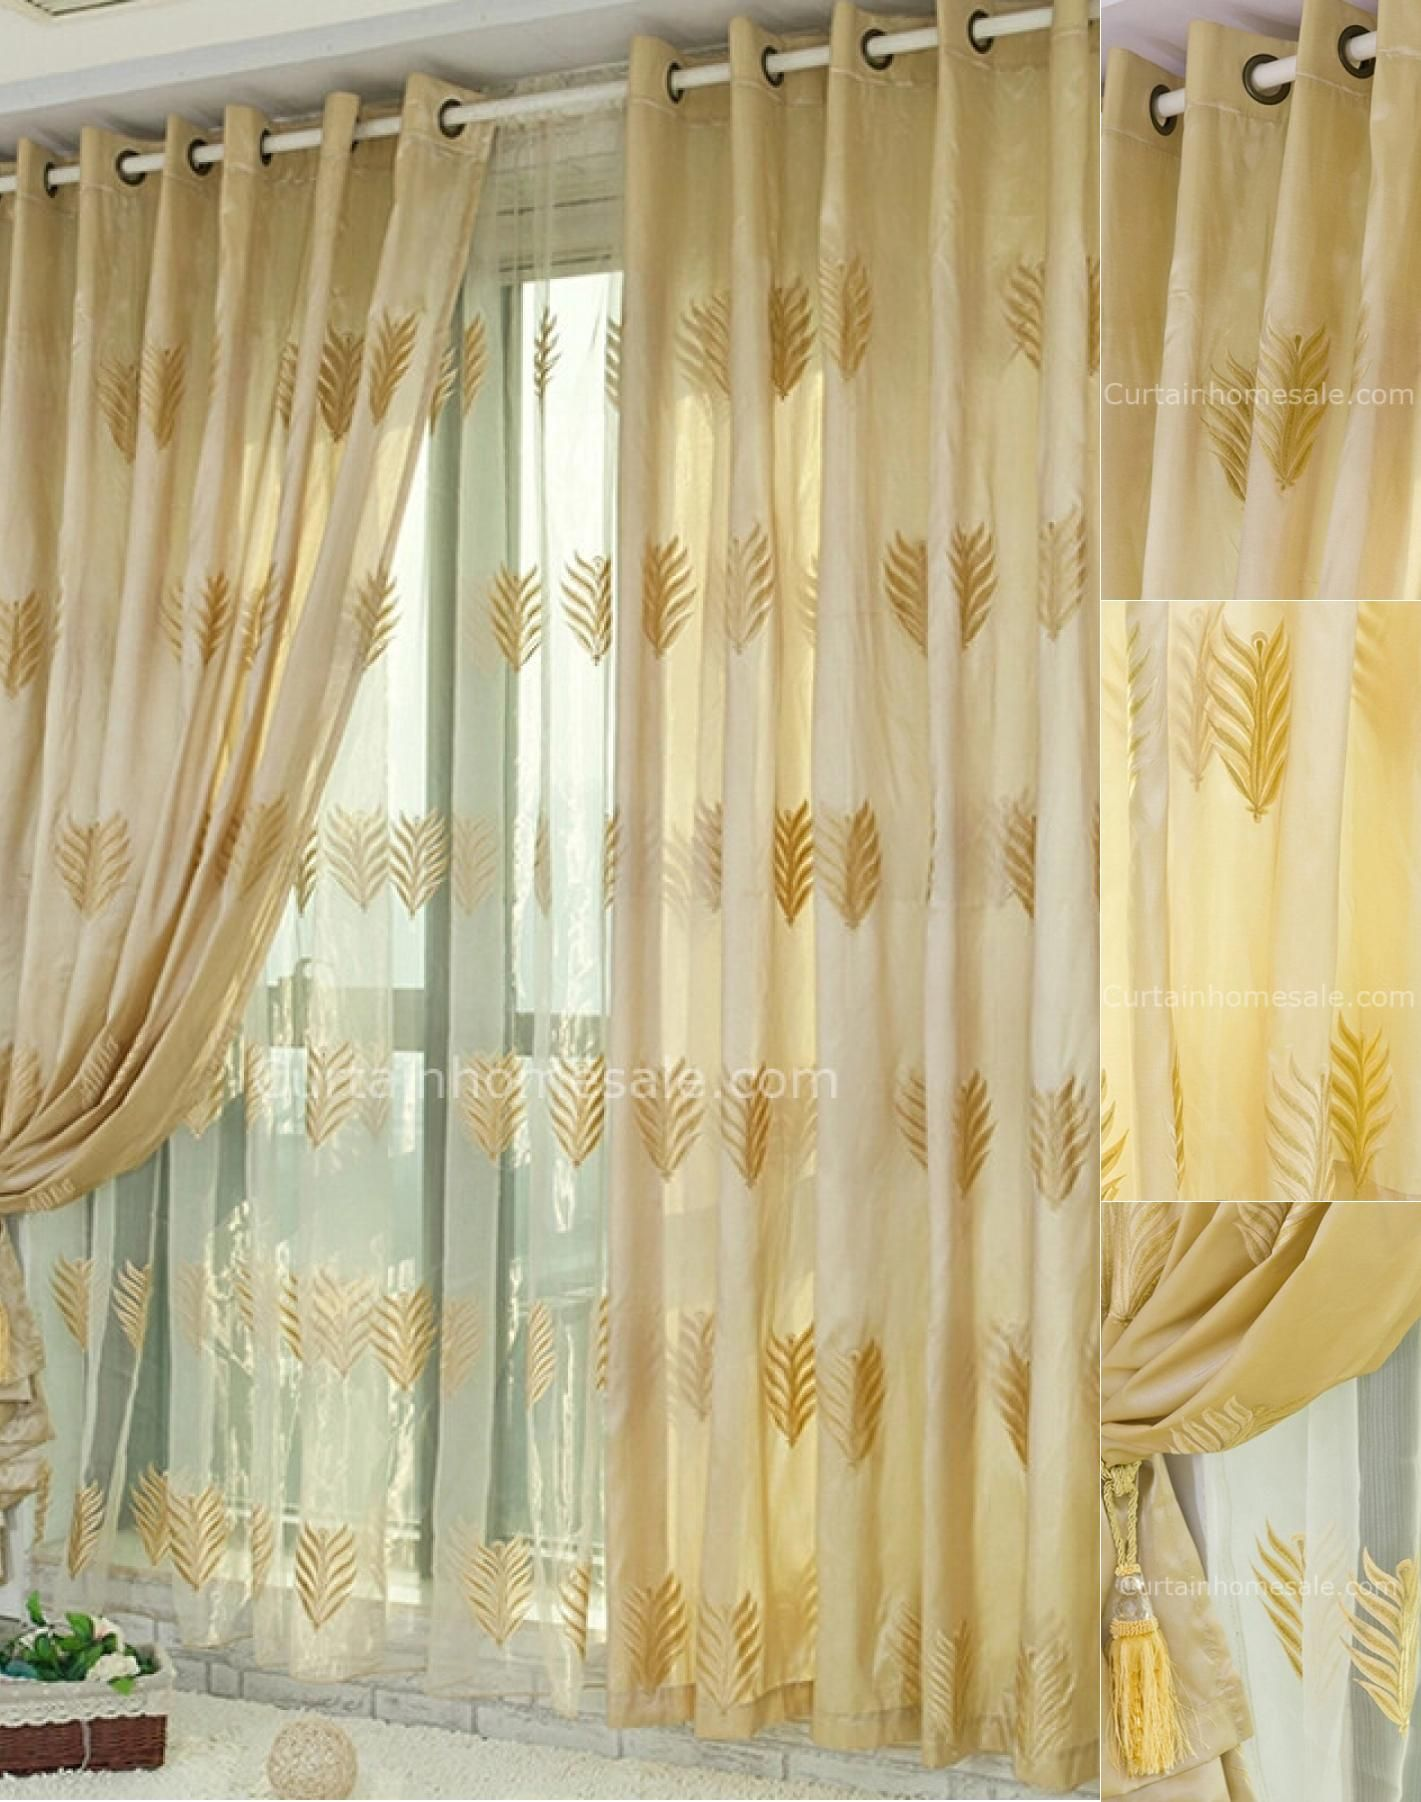 Fabulous Leaf Patterns Embroidery Bedroom Blackout yellow gold curtains  Hang I  Curtains